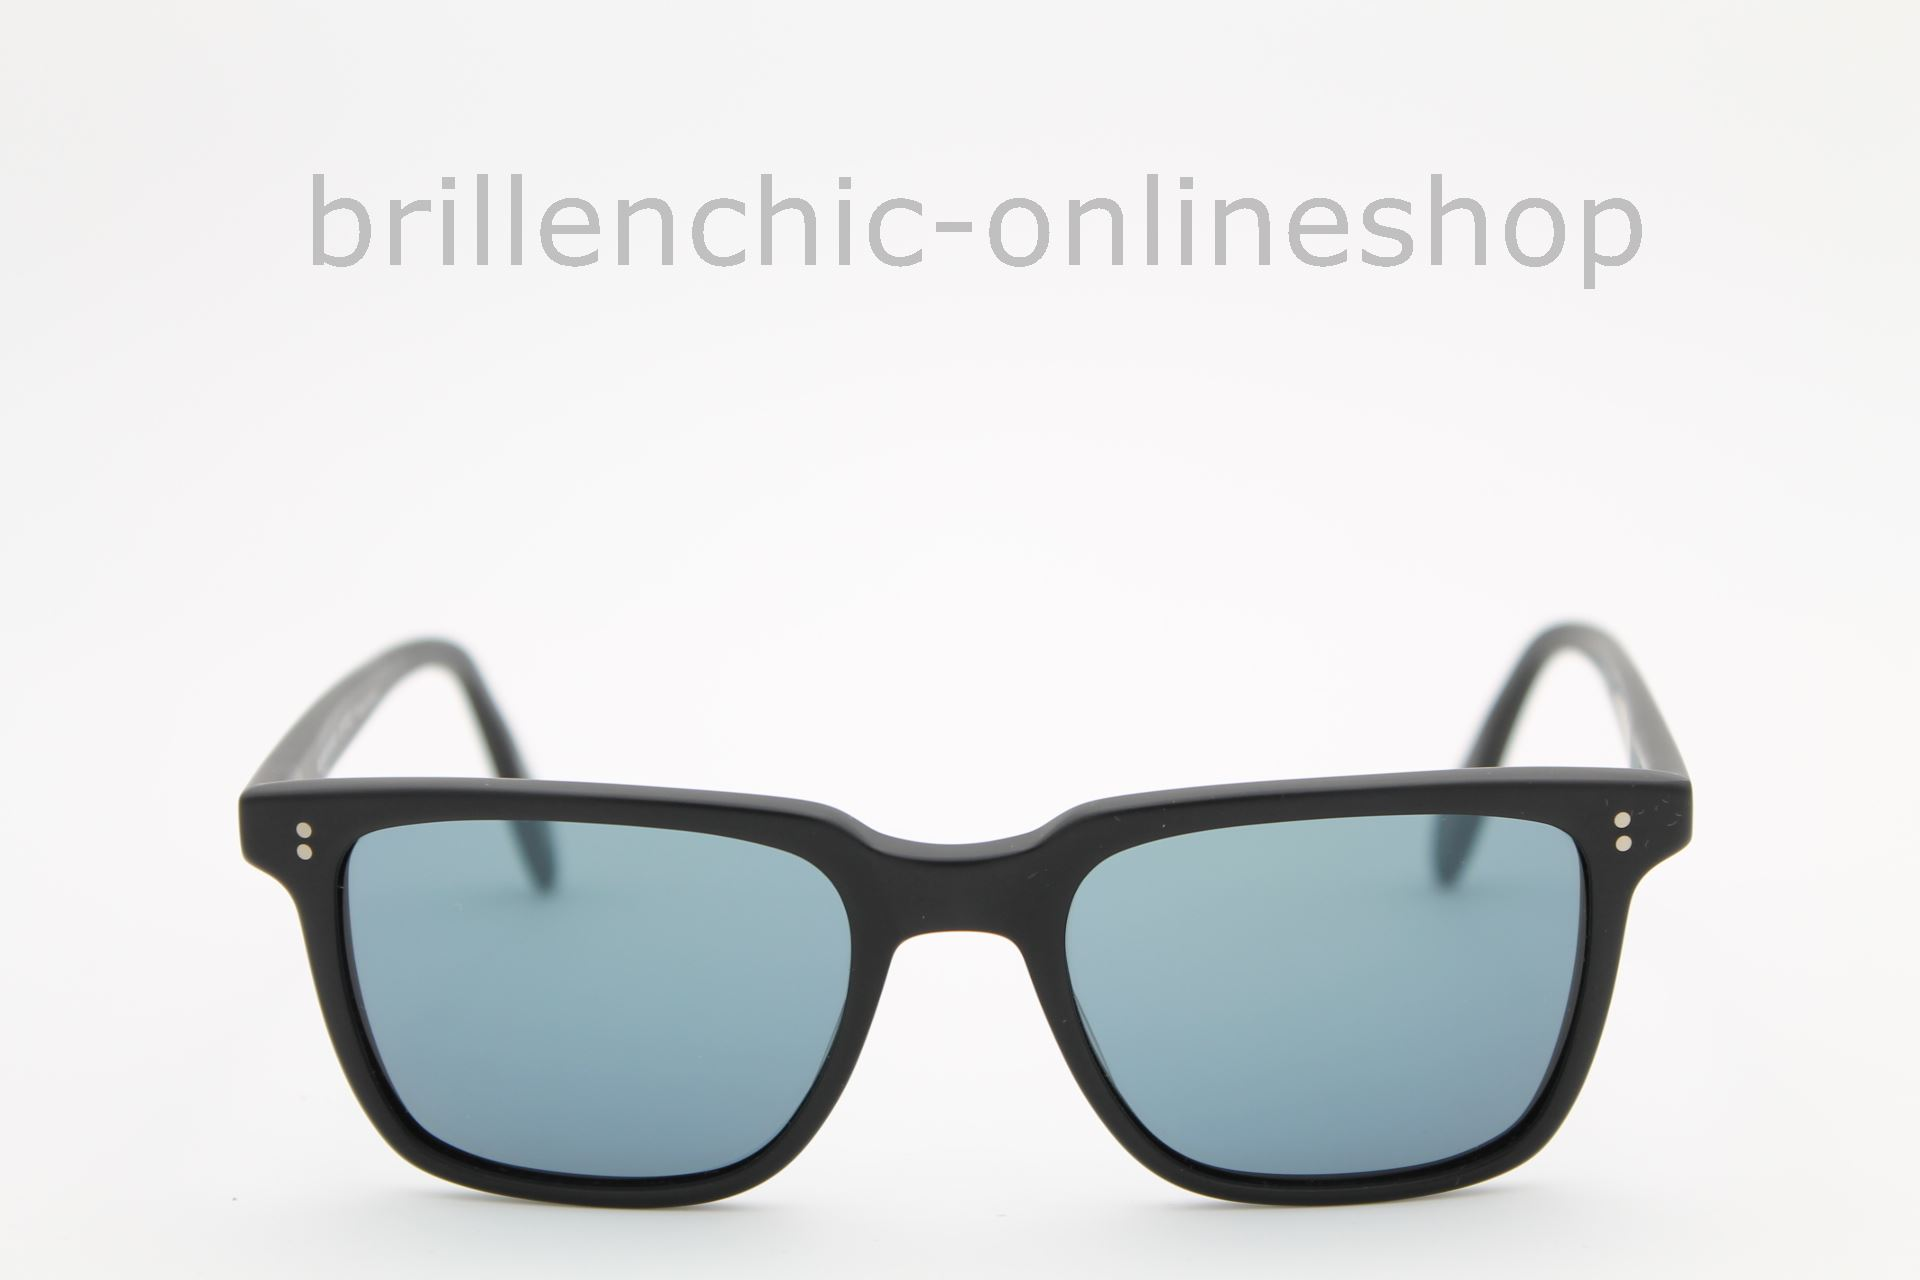 a6b51a96f2b Brillenchic-onlineshop in Berlin - OLIVER PEOPLES NDG - 1 SUN OV ...